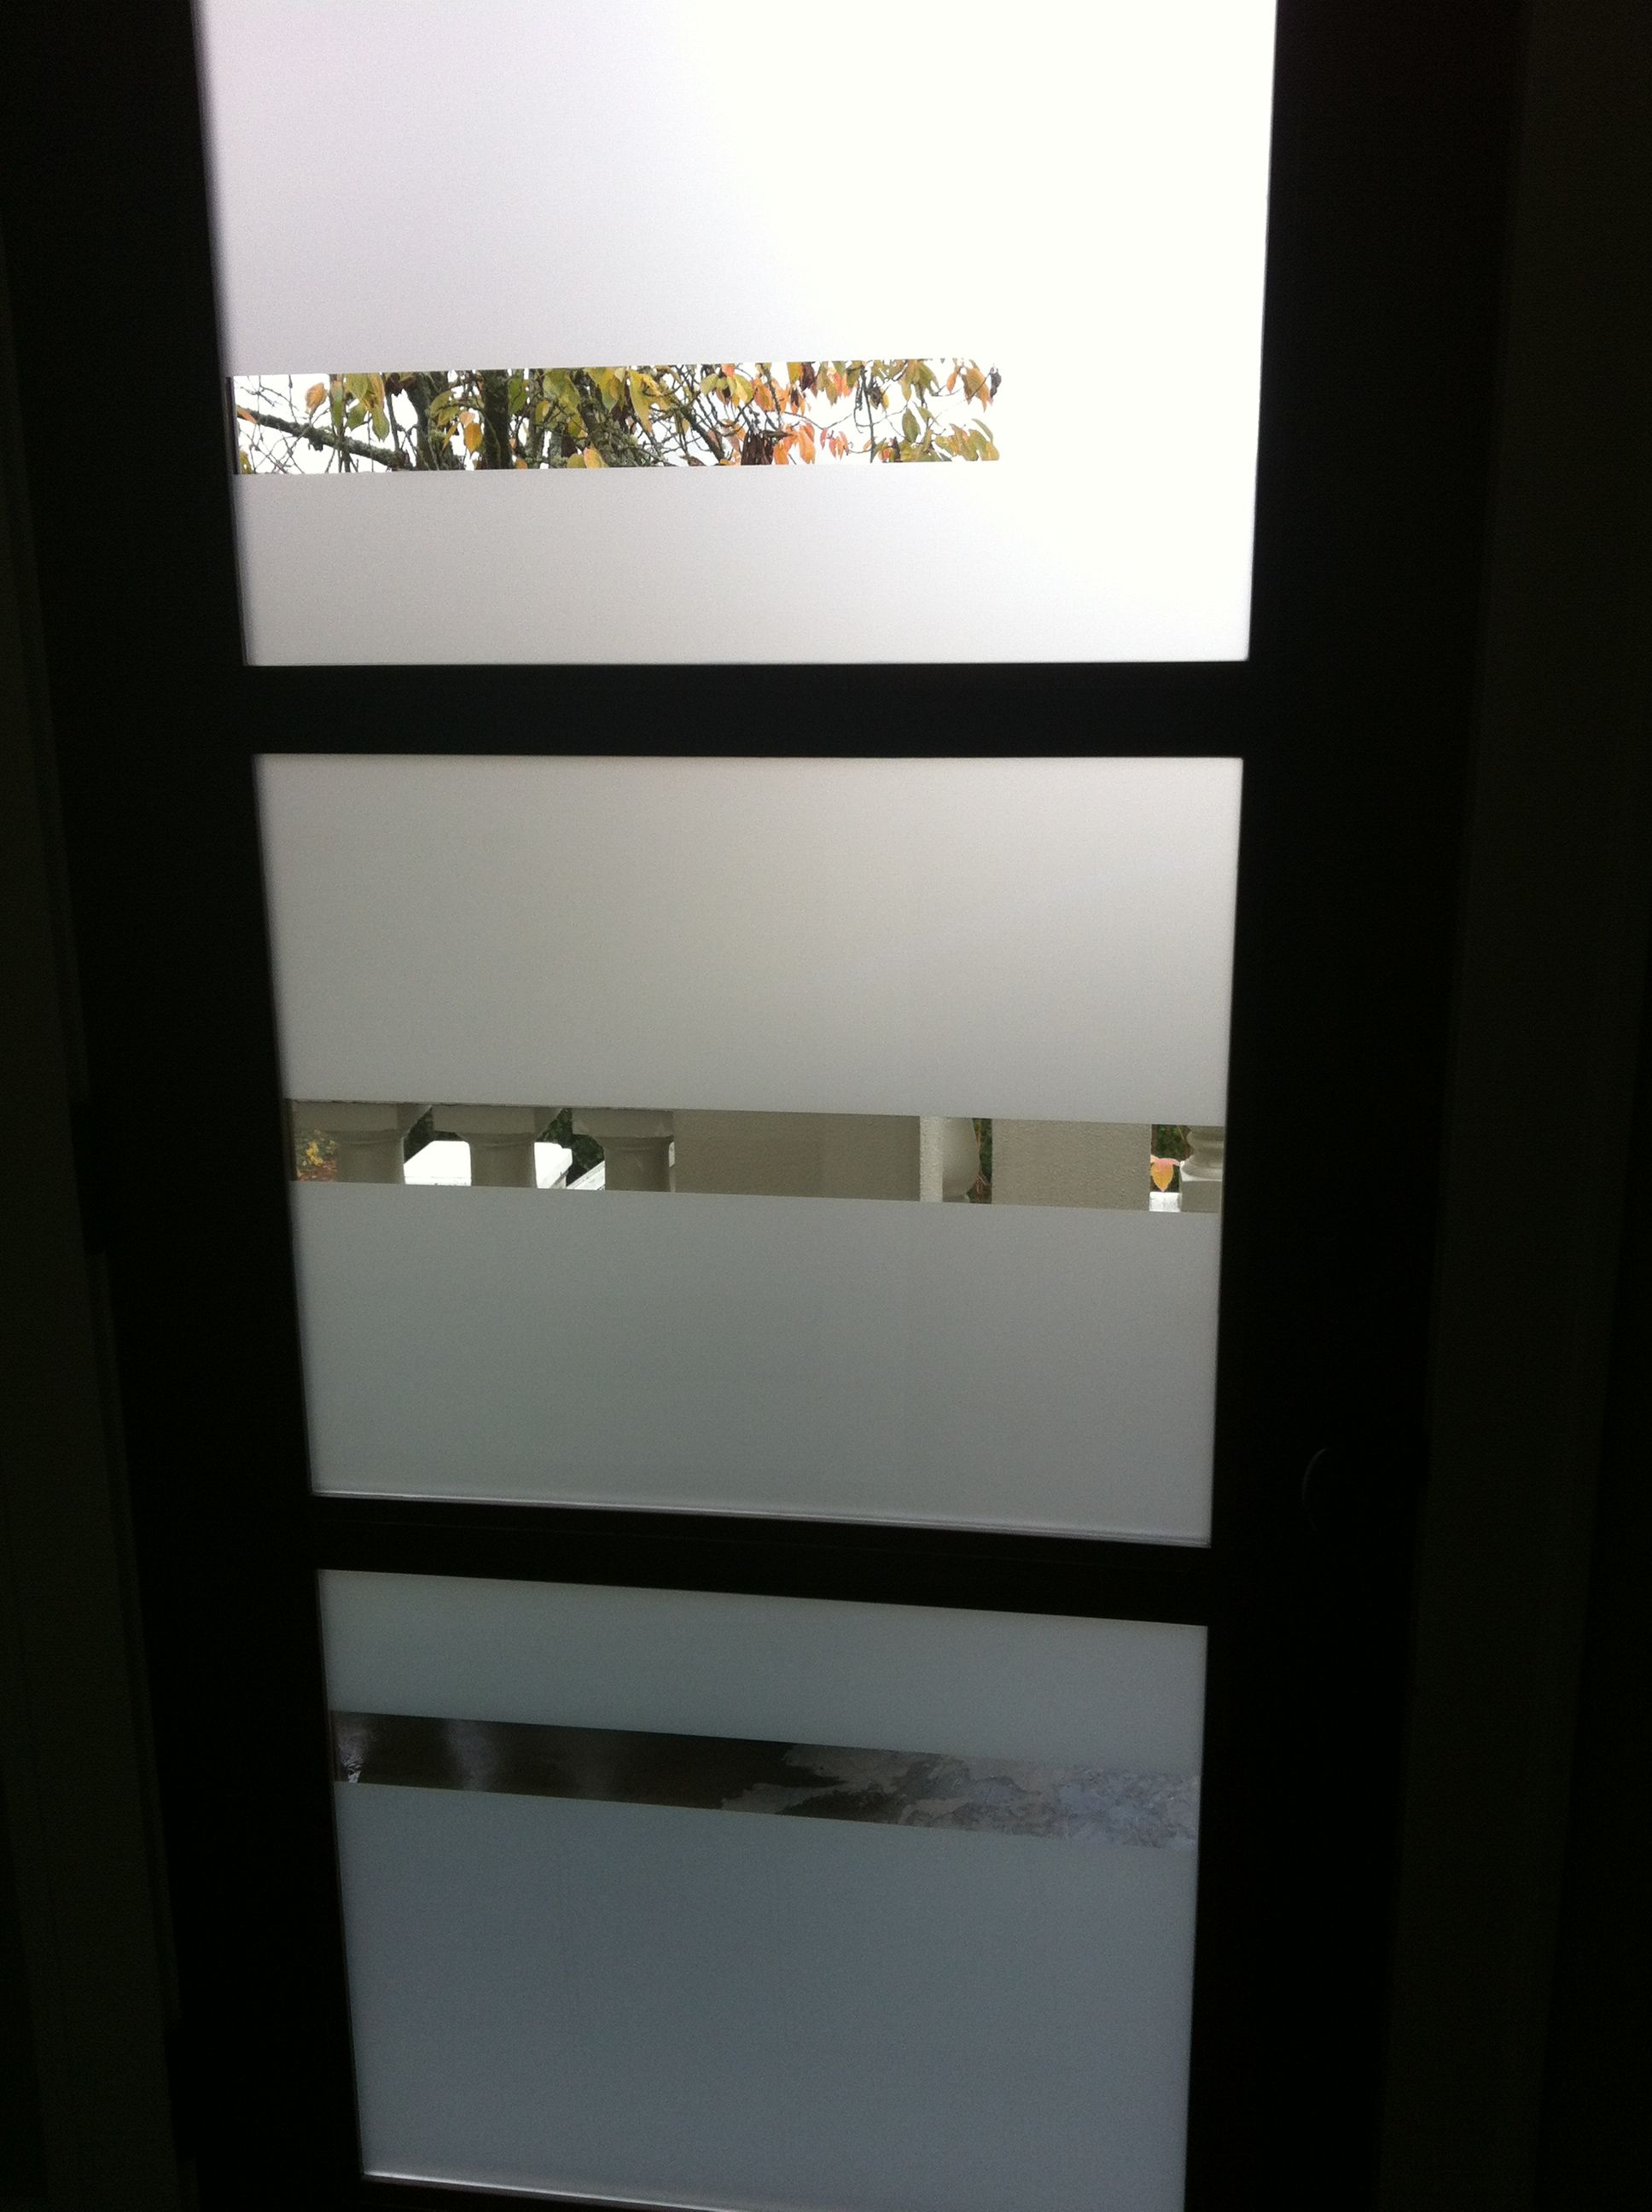 Front Door Glass Privacy Ideas   You Should Go For One Thatu0027s Tough Enough  To Endure The Vagaries Of The Weather Like Rain, Wind, Scorching Heat In  The Sun